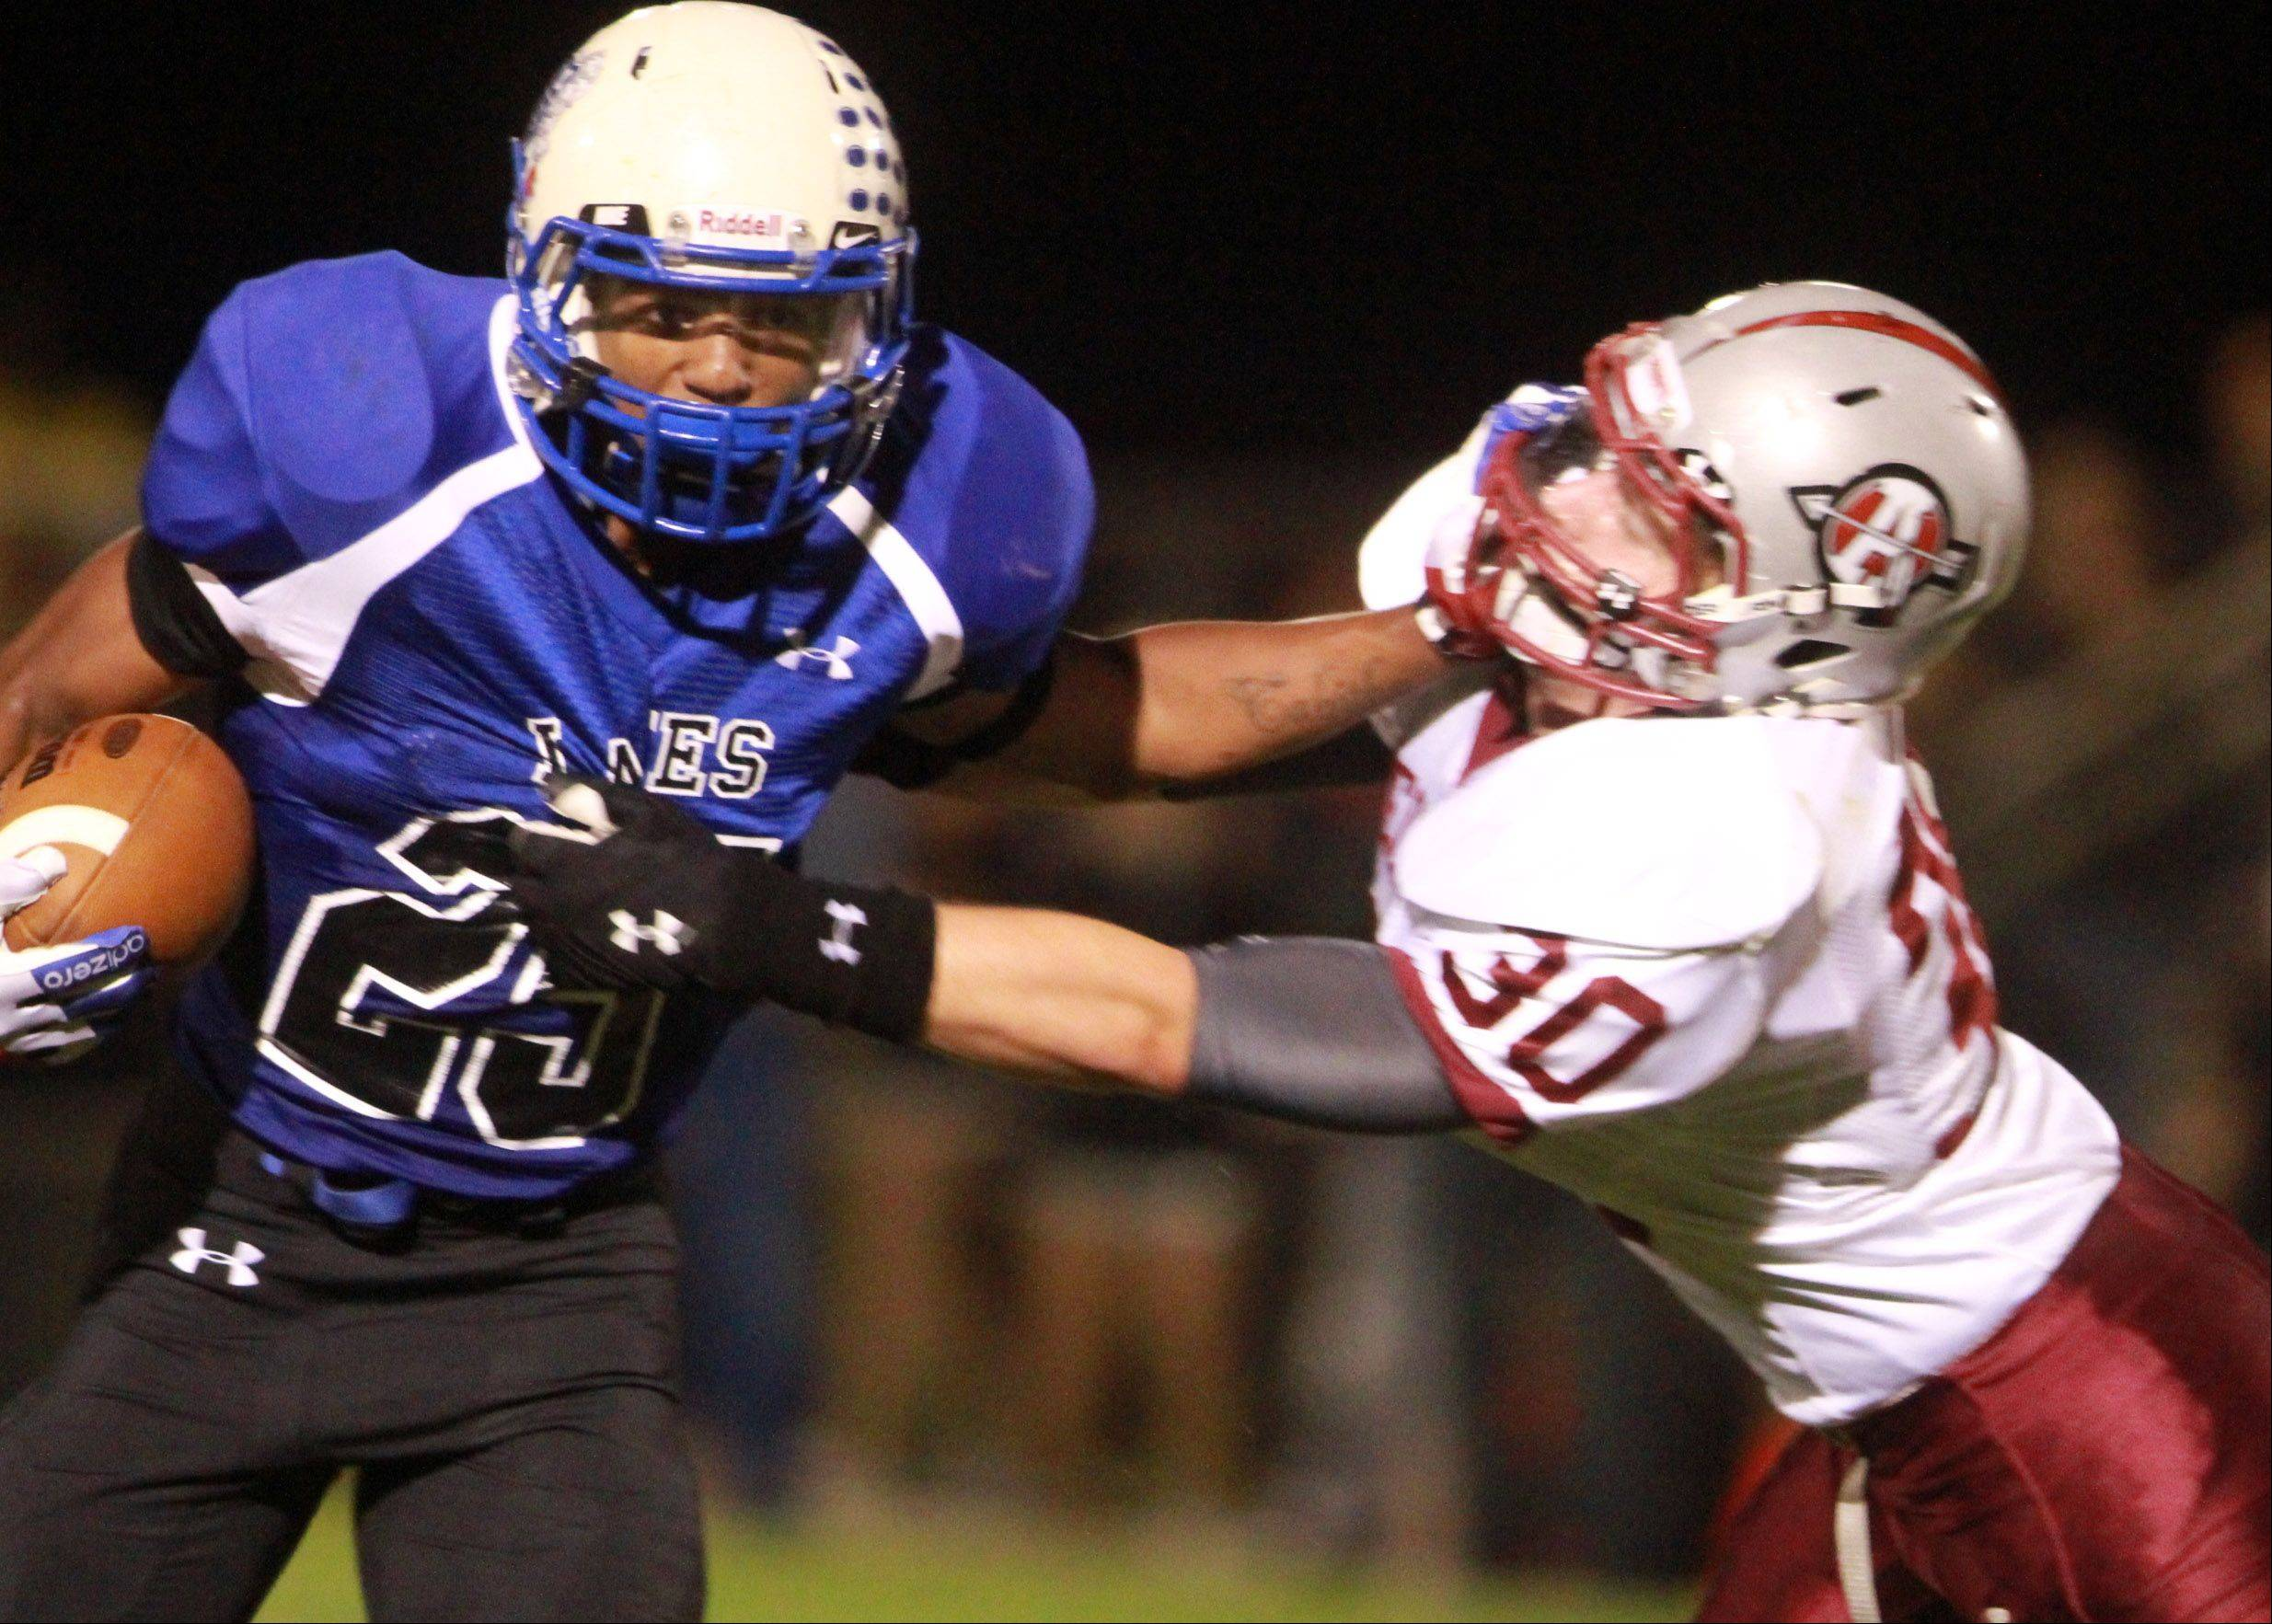 Lakes running-back Devyn Cedzidlo pushes off an Antioch defender.